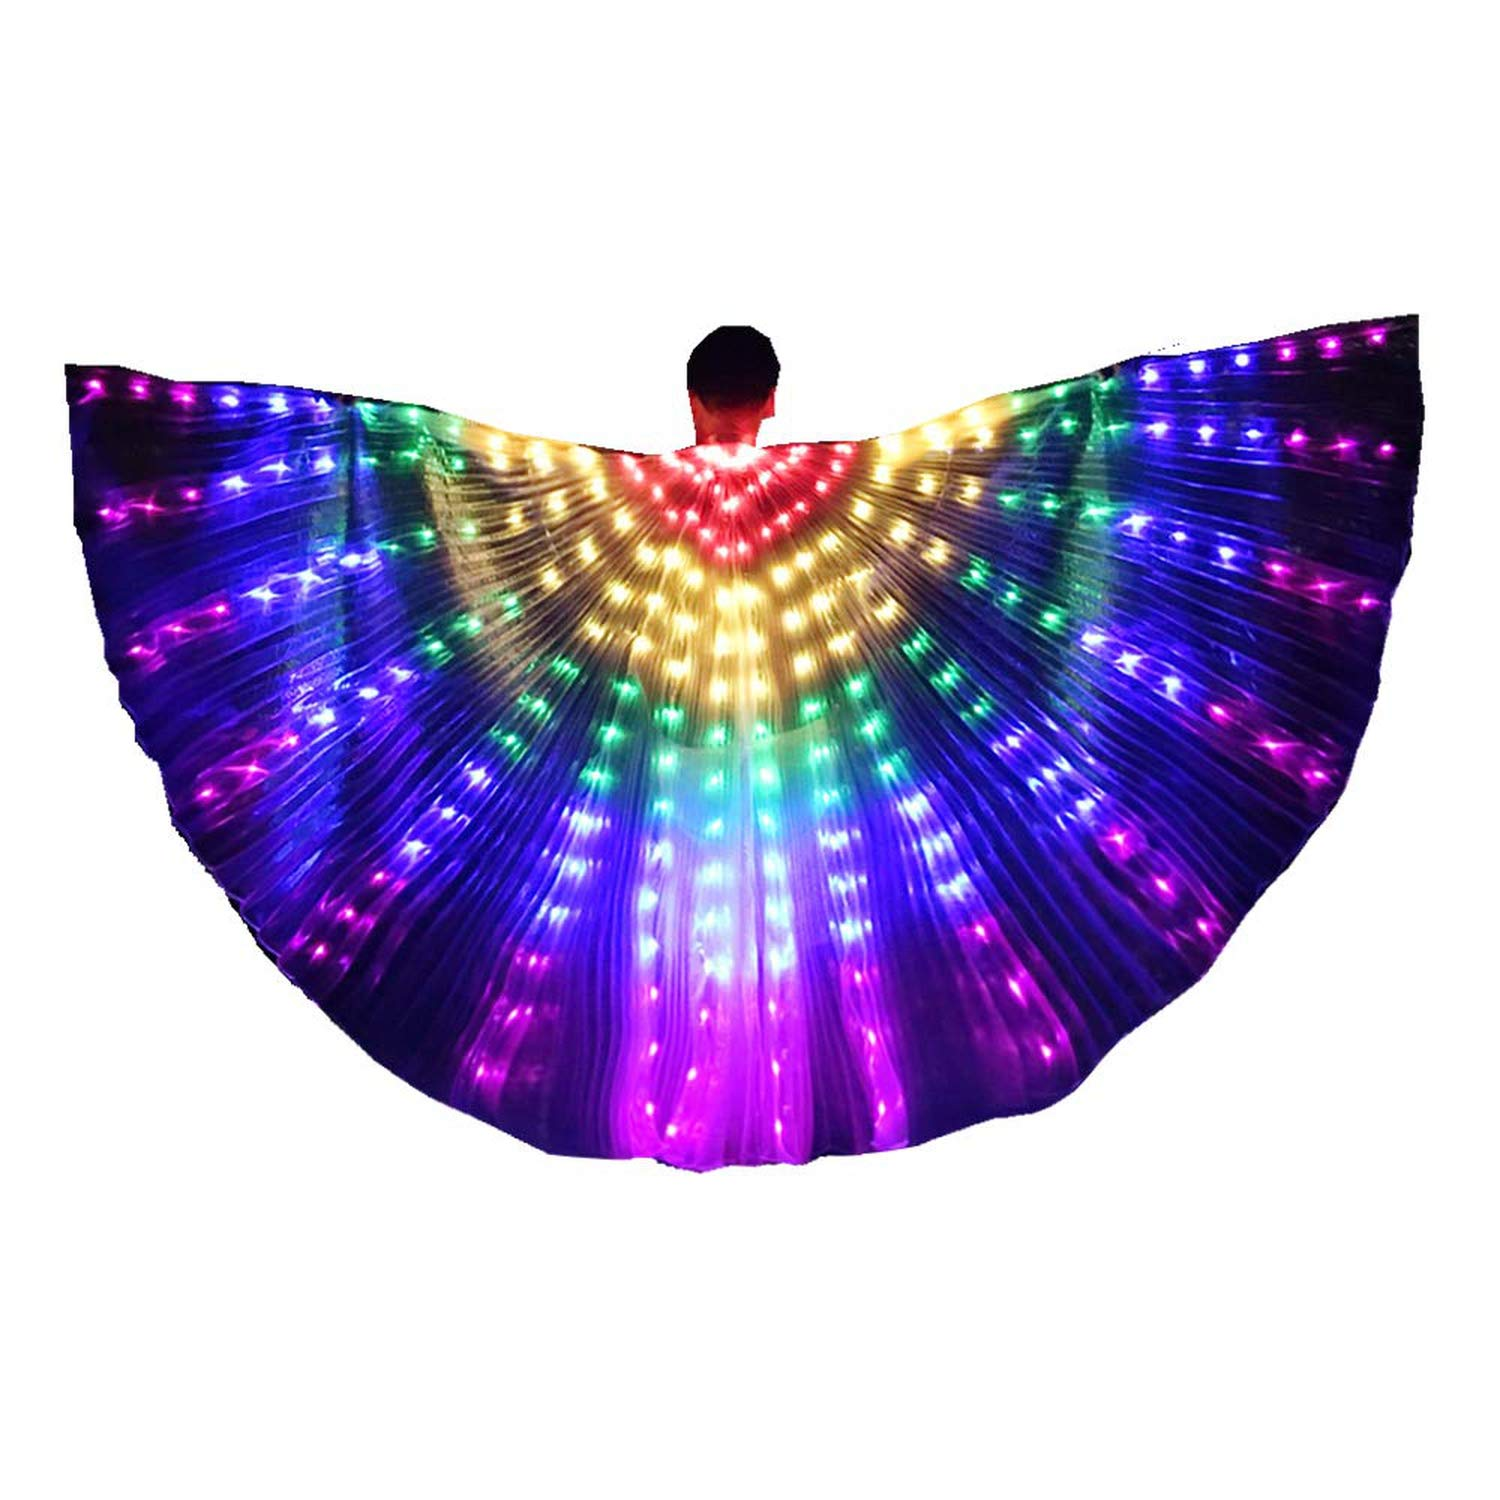 xiaoxiaoland εїз Costume Accessory LED Wings - Belly Dance Light Up Wings Party Club Wear with Flexible Sticks for Women/Girls360degree,Neck,Rainbow by xiaoxiaoland